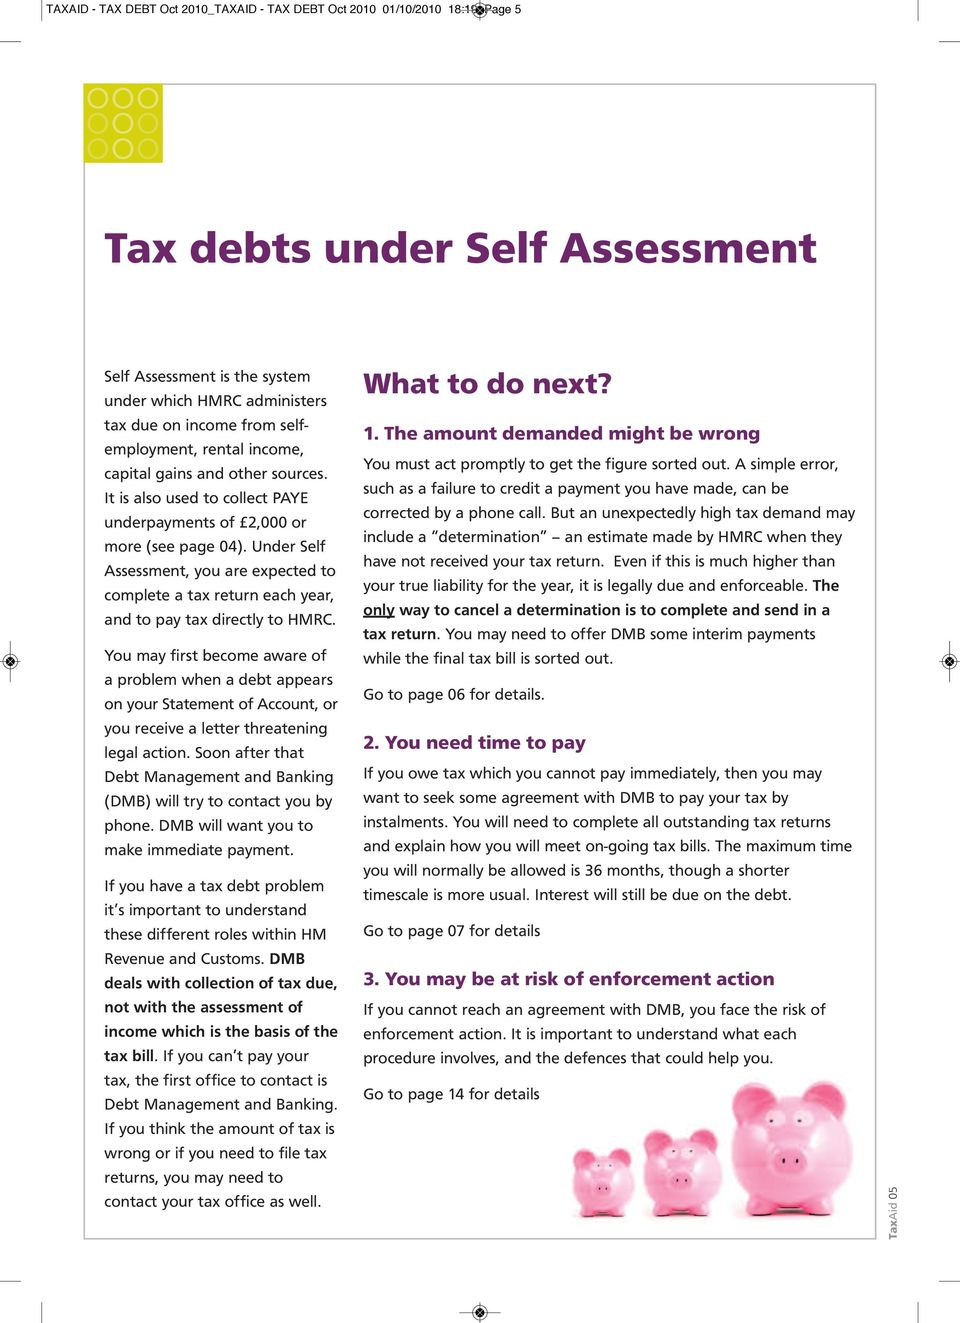 Under Self Assessment, you are expected to complete a tax return each year, and to pay tax directly to HMRC.